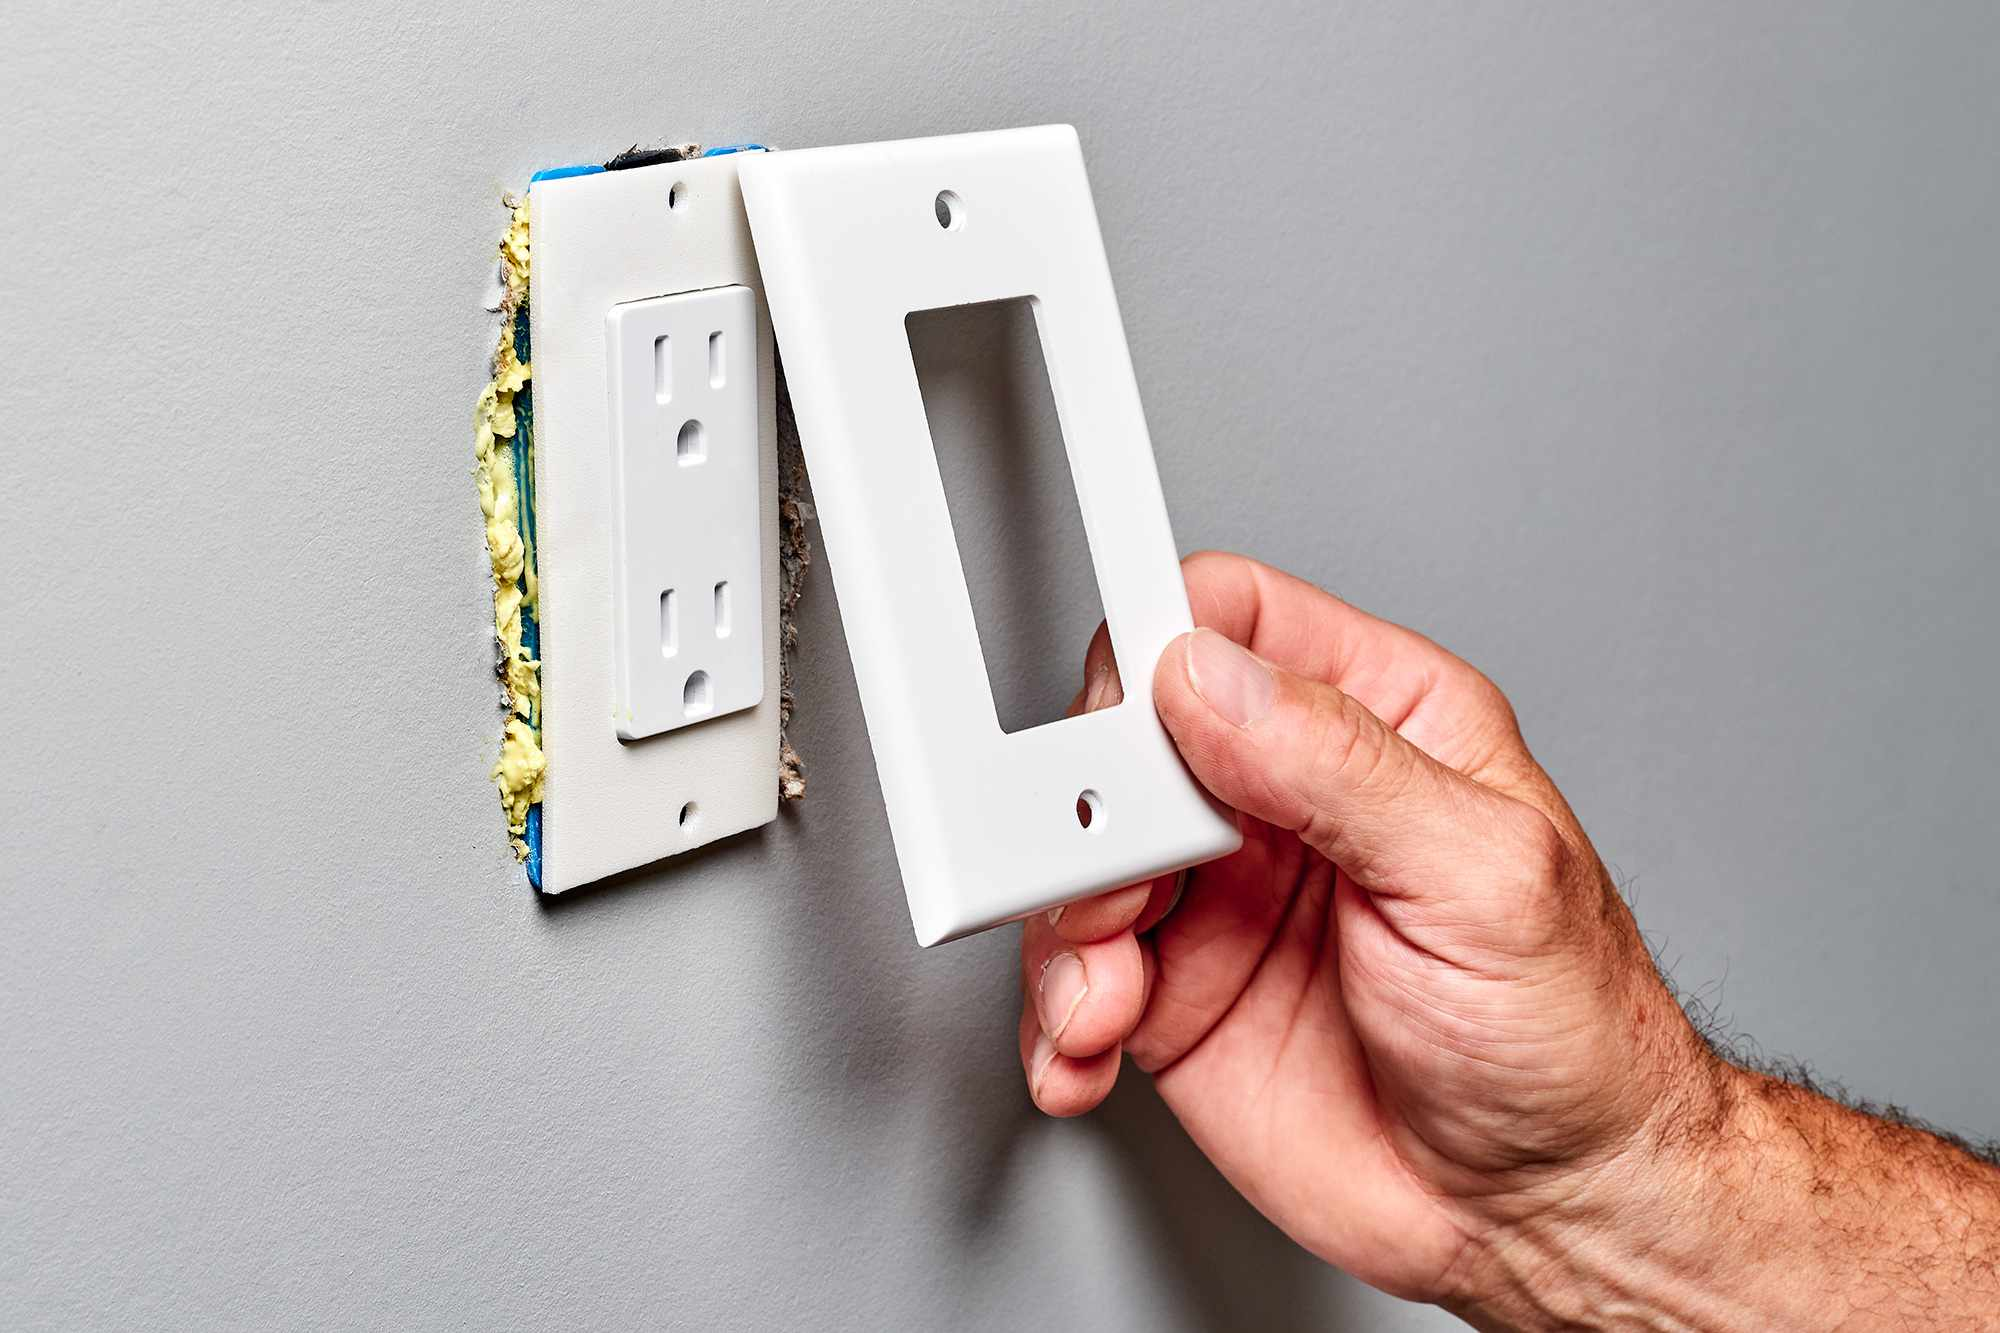 Neoprene insulating foam gaskets inserted behind reinstalled cover plate of electrical box